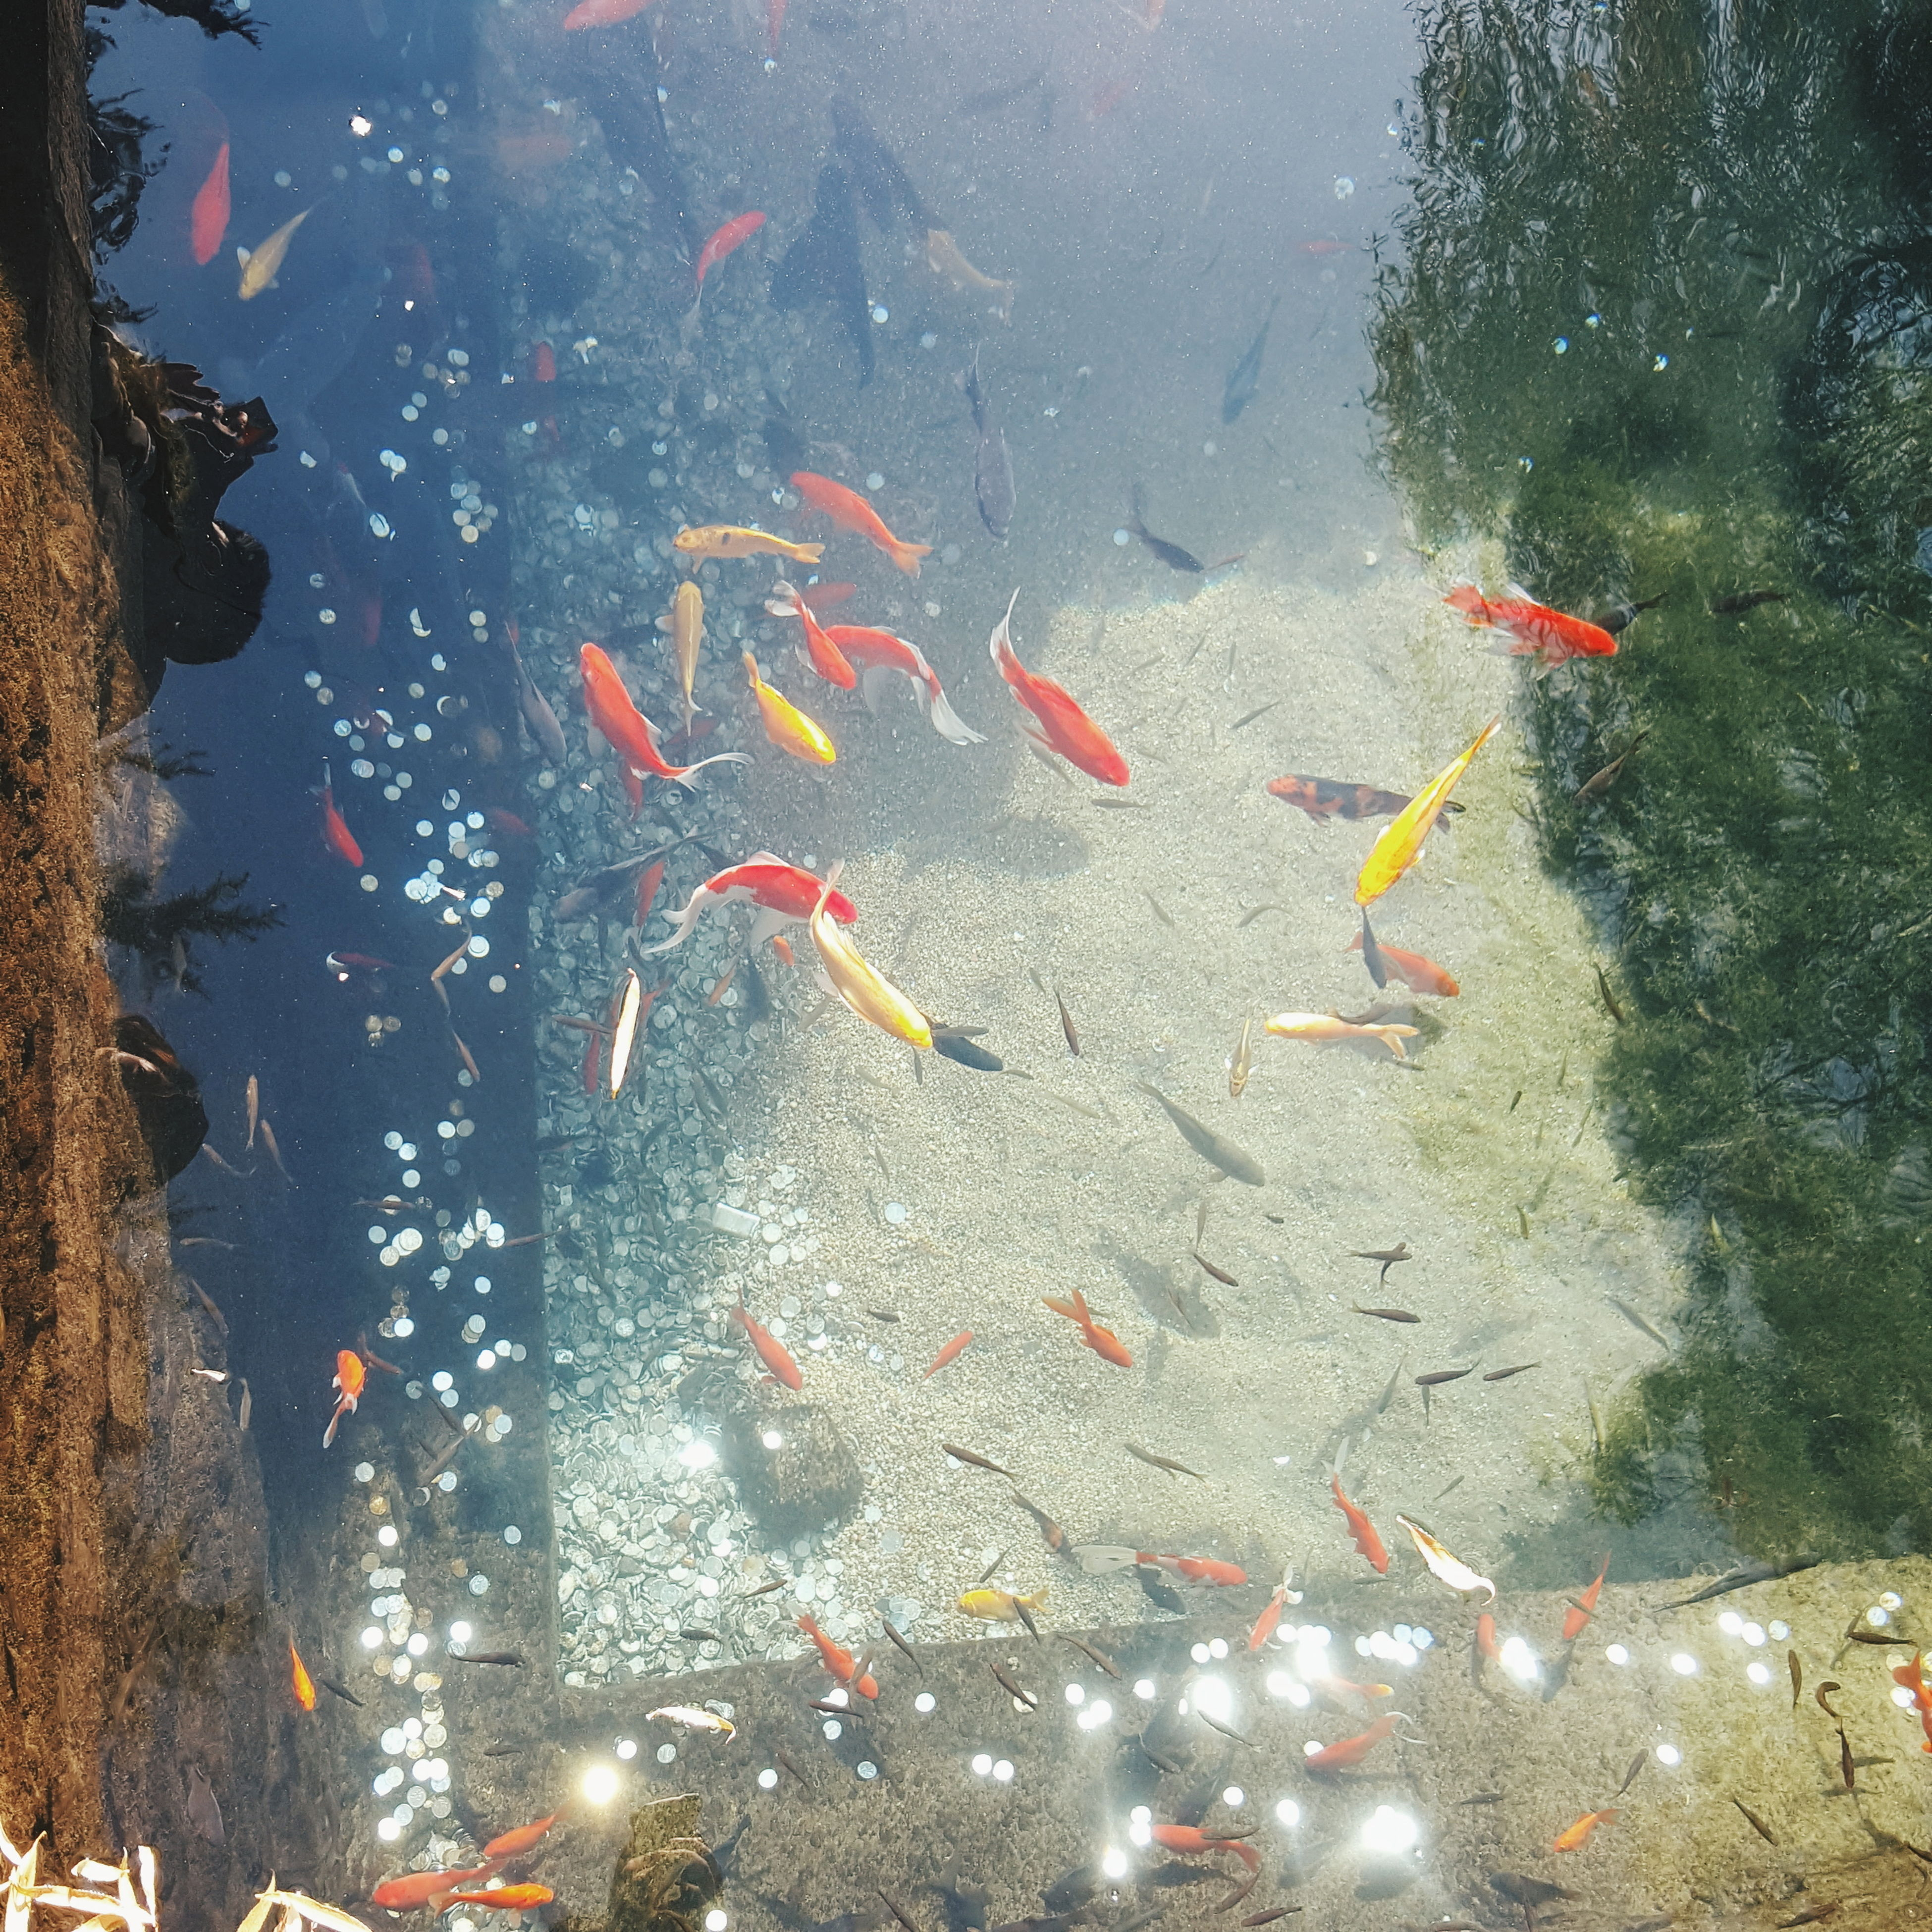 water, fish, underwater, animal themes, nature, transparent, sea life, wet, high angle view, swimming, school of fish, pond, animals in the wild, koi carp, no people, outdoors, wildlife, reflection, beauty in nature